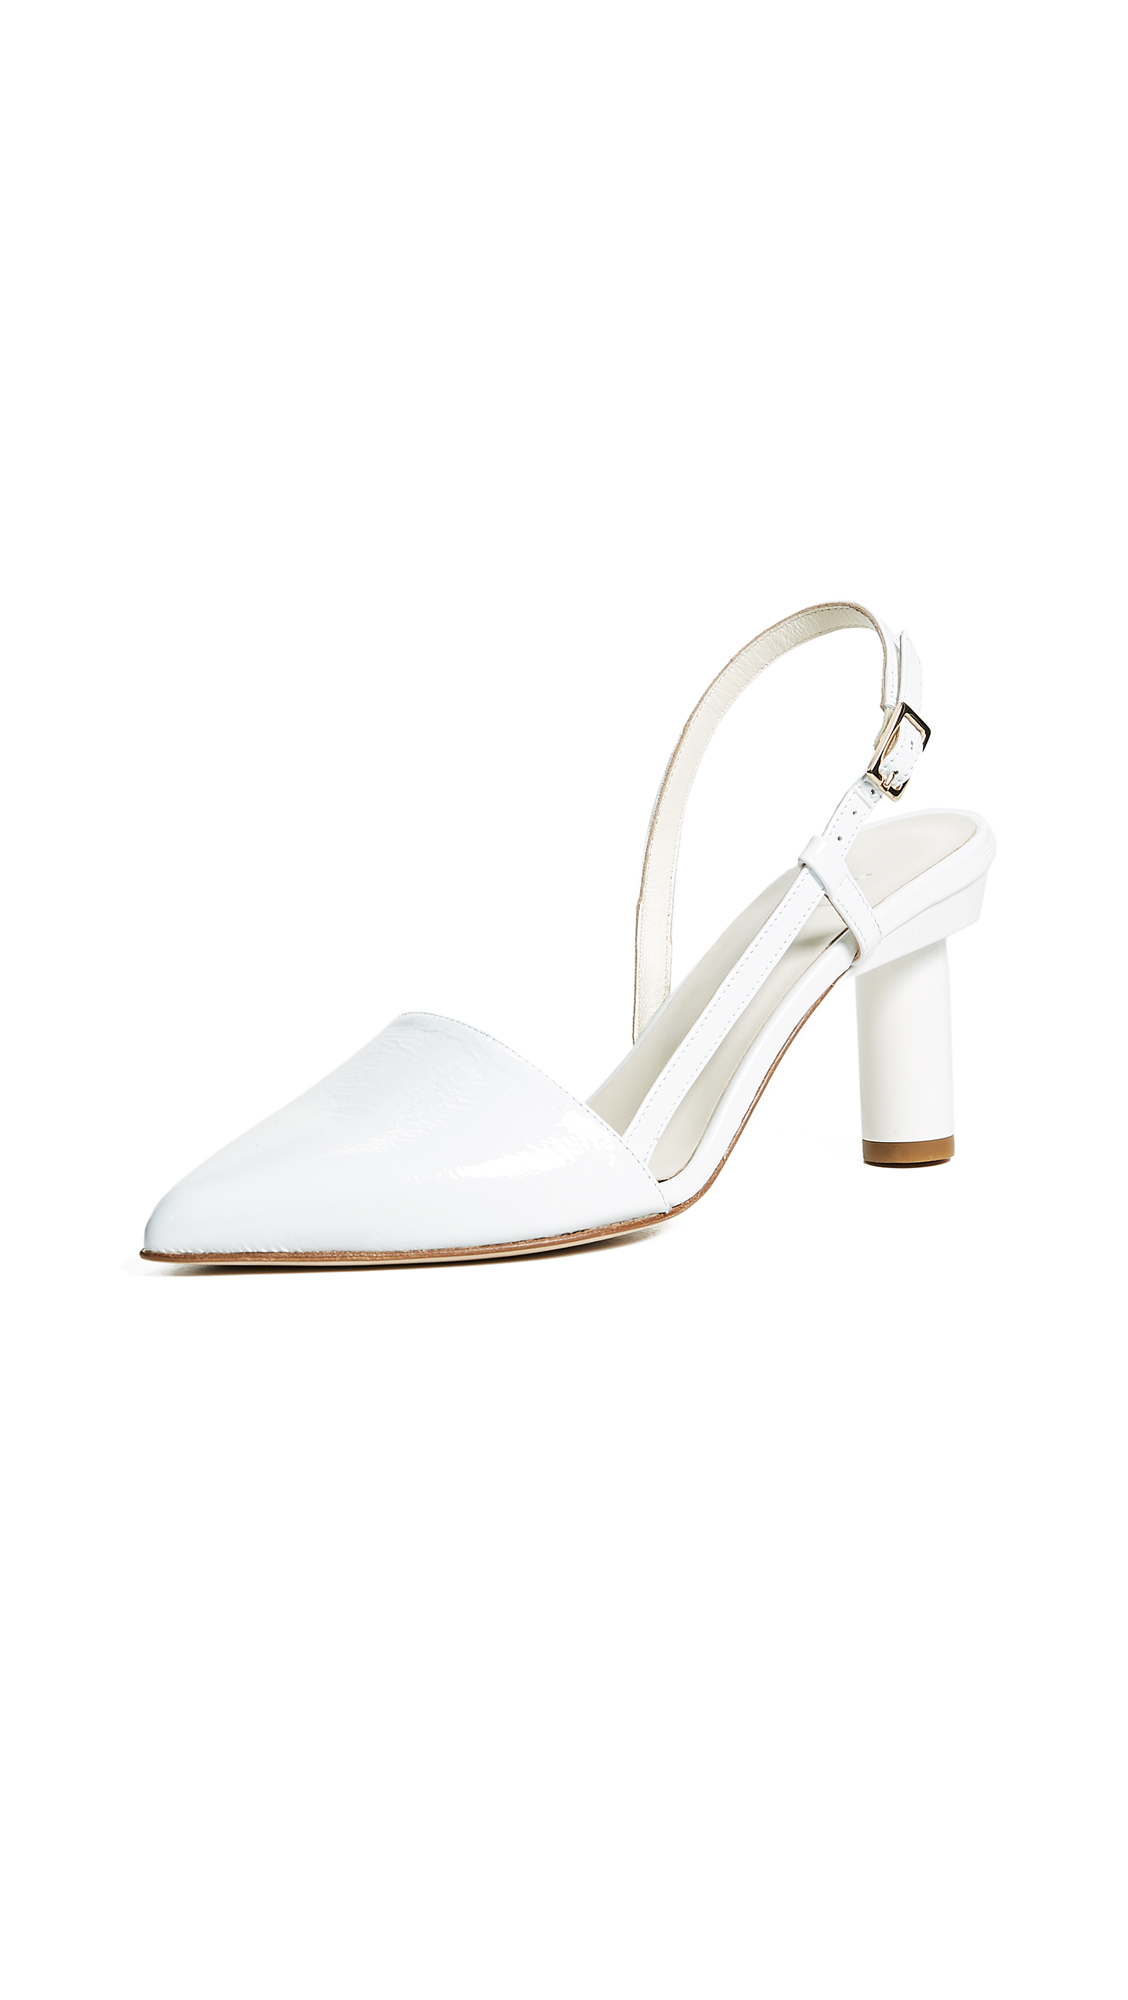 Tibi Sean Slingback Pumps - White